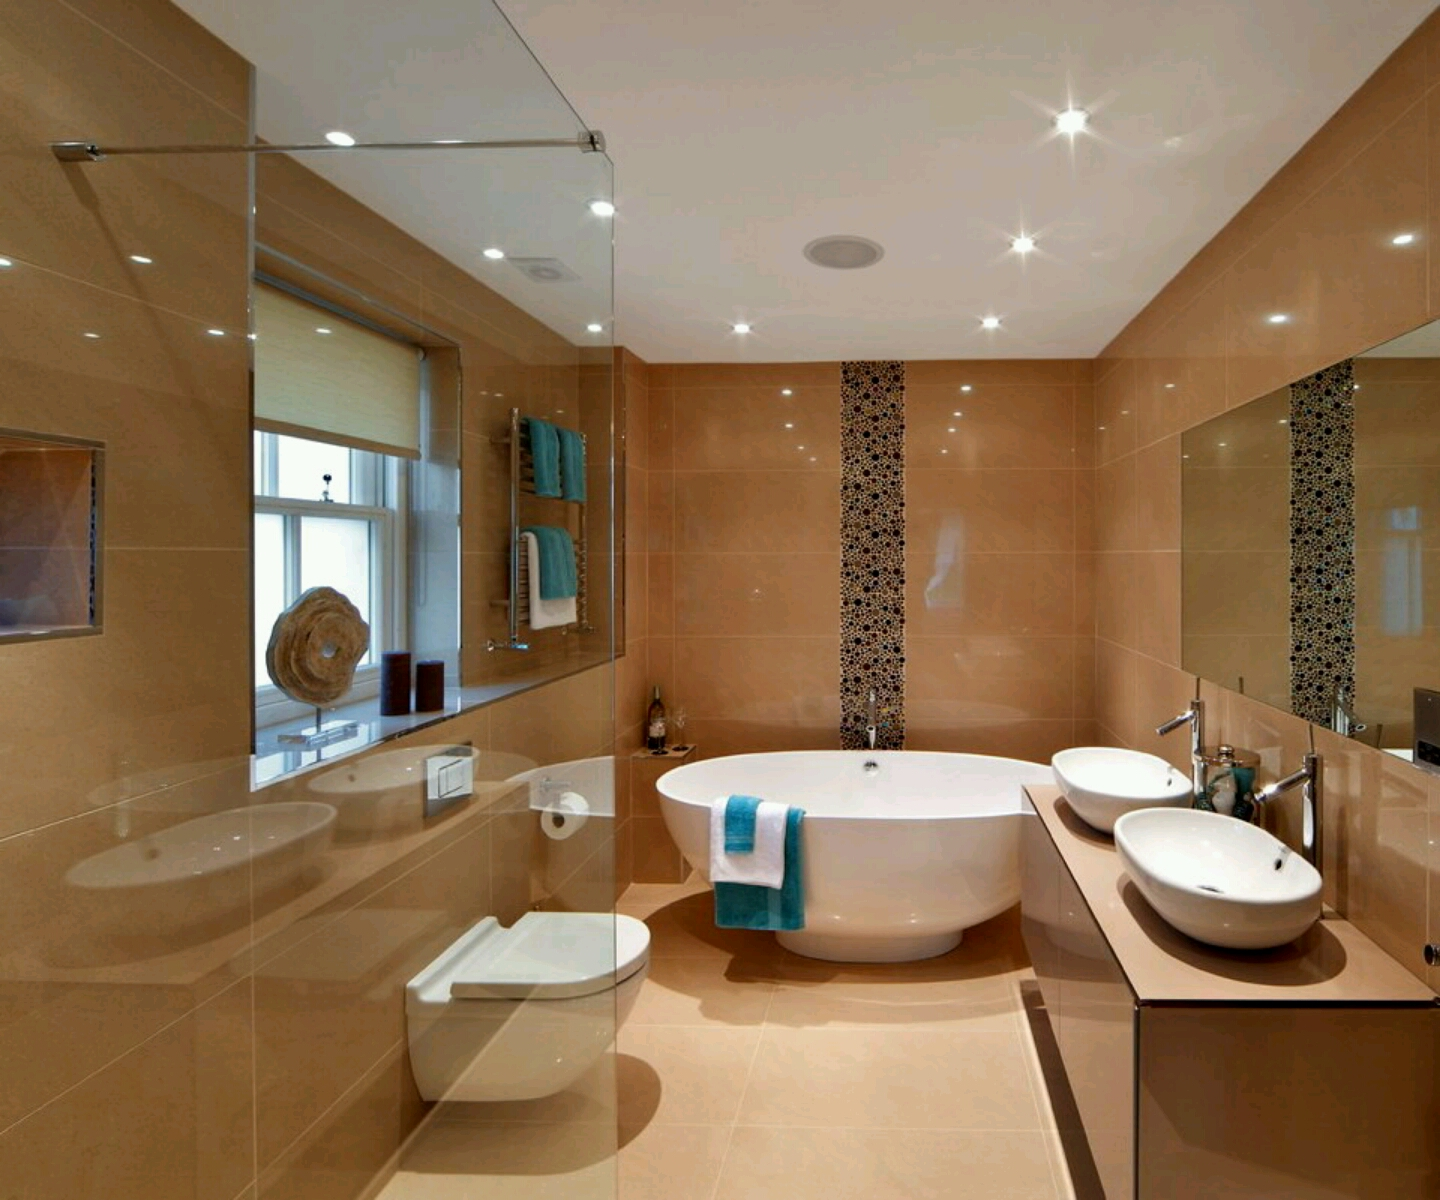 New home designs latest luxury modern bathrooms designs for Restroom design ideas